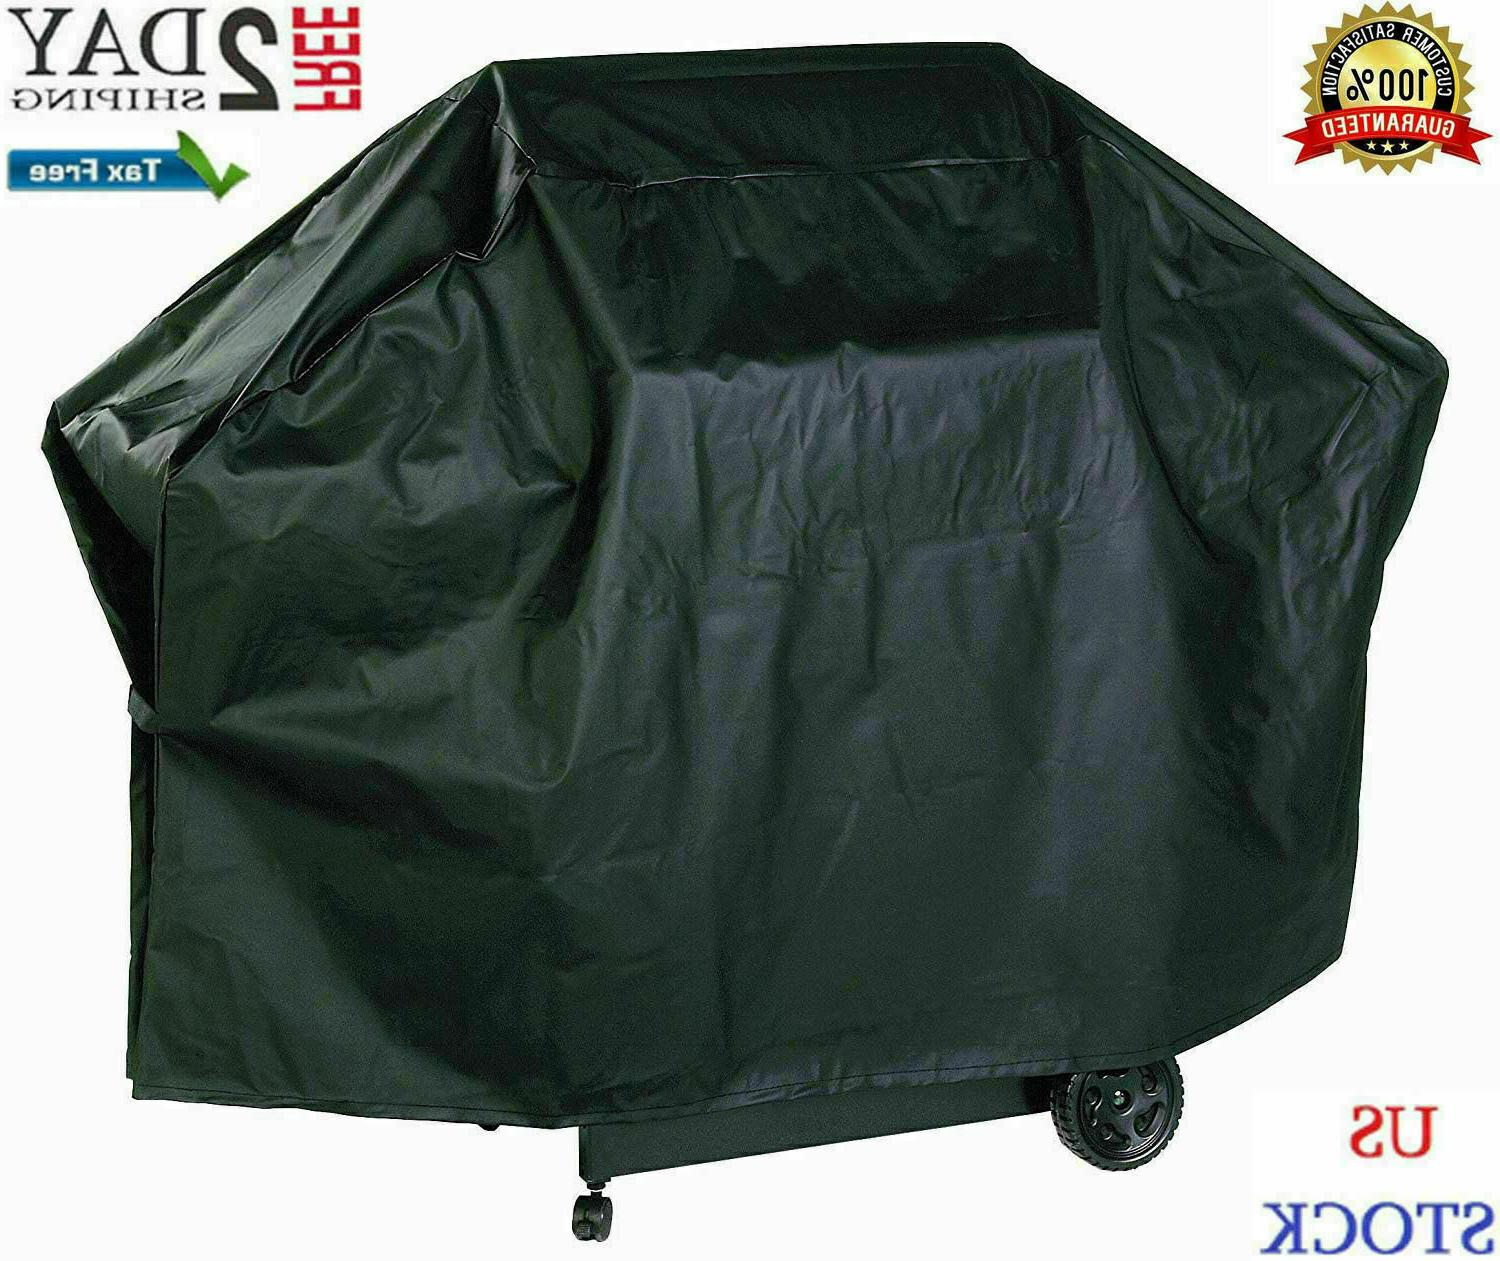 Char-Broil Grill Cover BBQ HEAVY-WEIGHT Weather Resistant wa